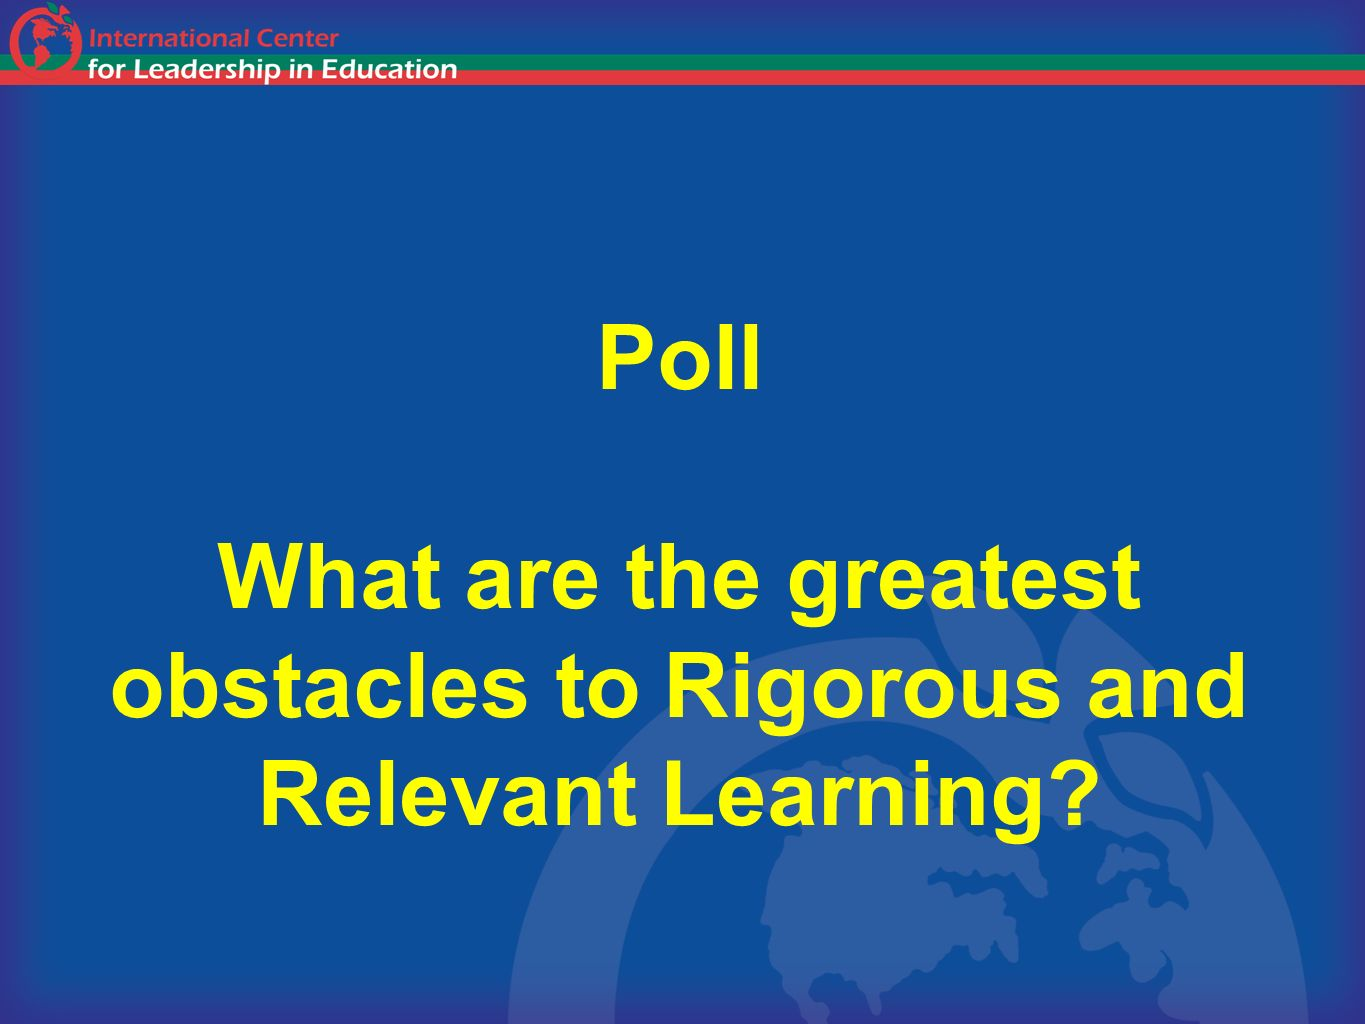 Poll What are the greatest obstacles to Rigorous and Relevant Learning